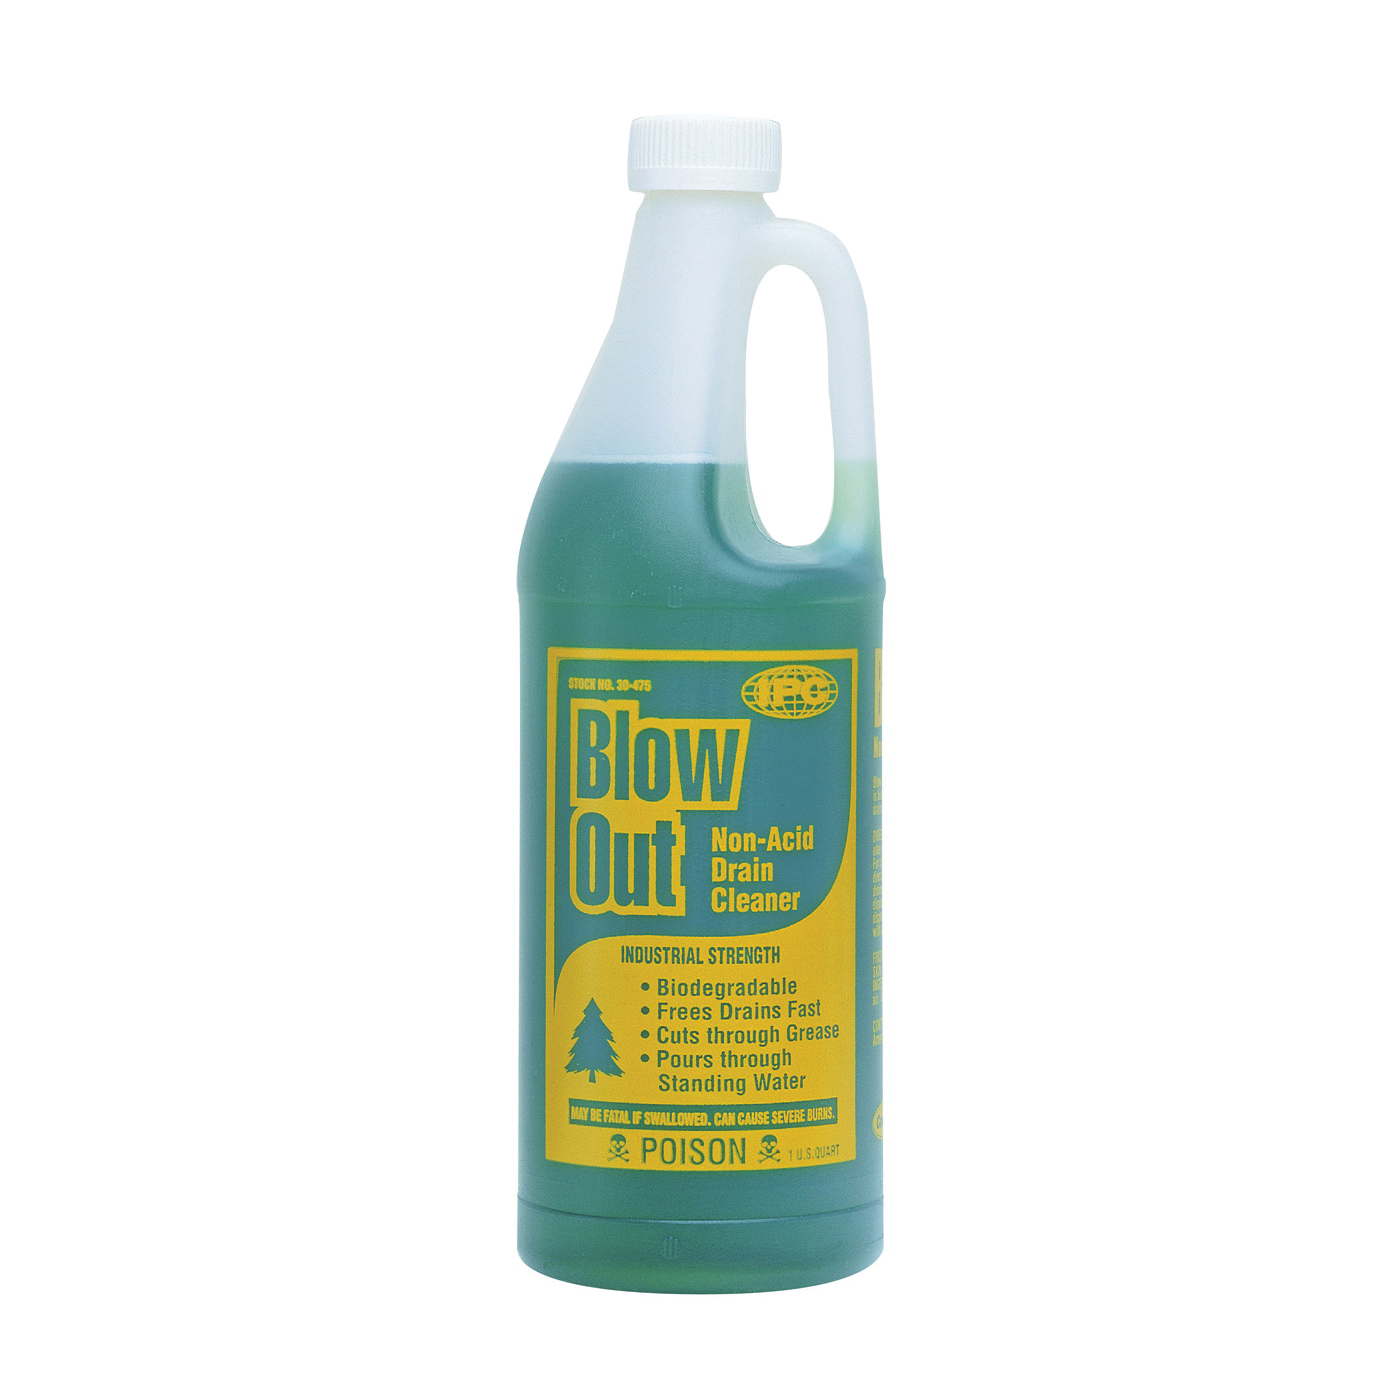 Picture of ComStar Blow Out 30-475 Drain Cleaner, Liquid, Dark Green, Odorless, 1 qt Package, Bottle